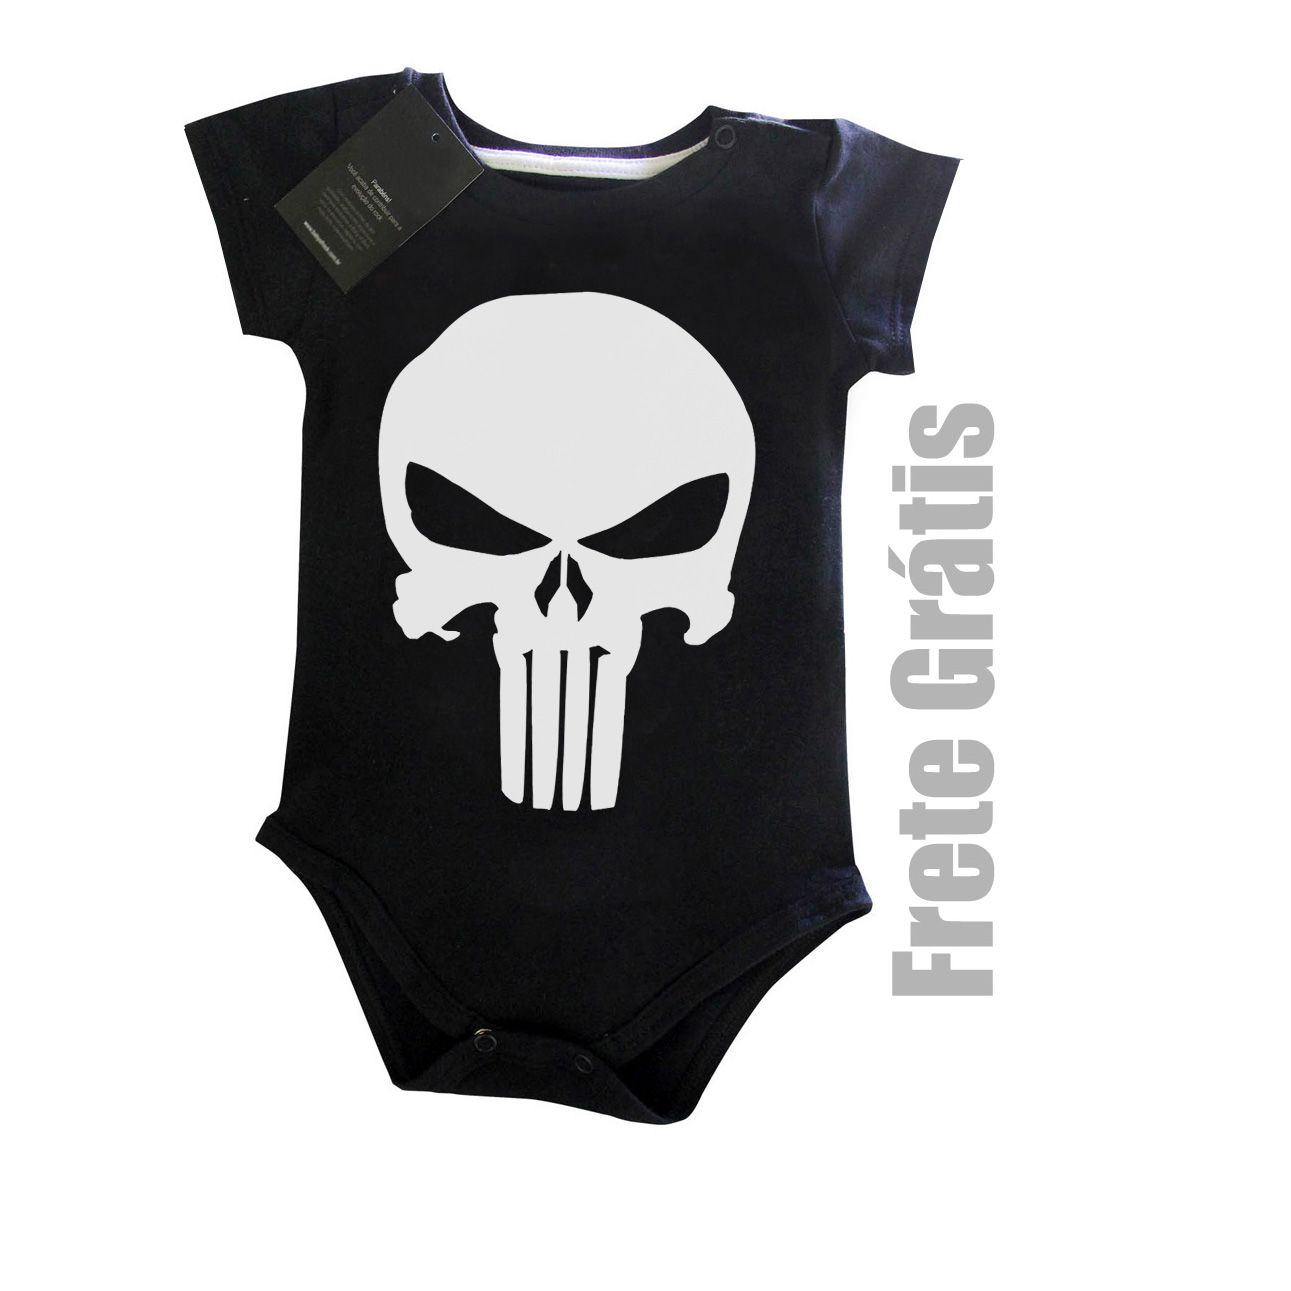 Body Bebe Rock Justiceiro  - Black  - Baby Monster S/A